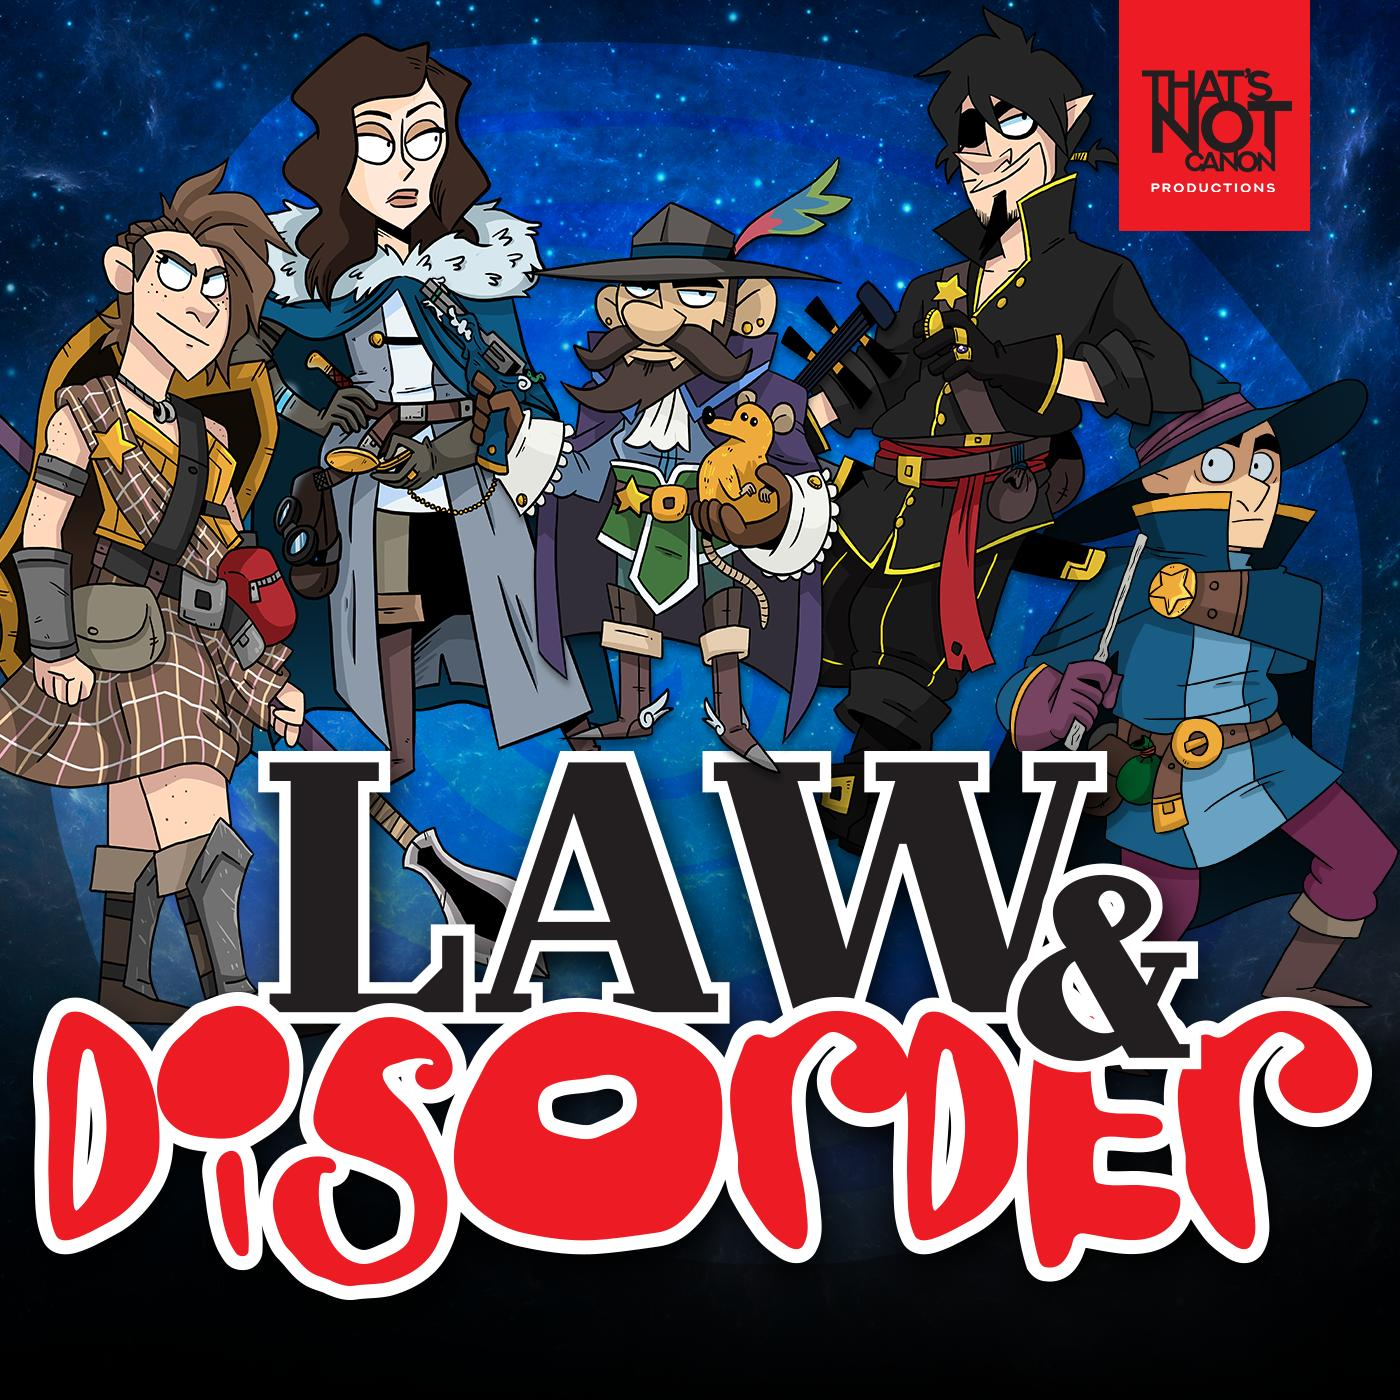 Law & DISORDER (podcast) - That's Not Canon Podcast | Listen